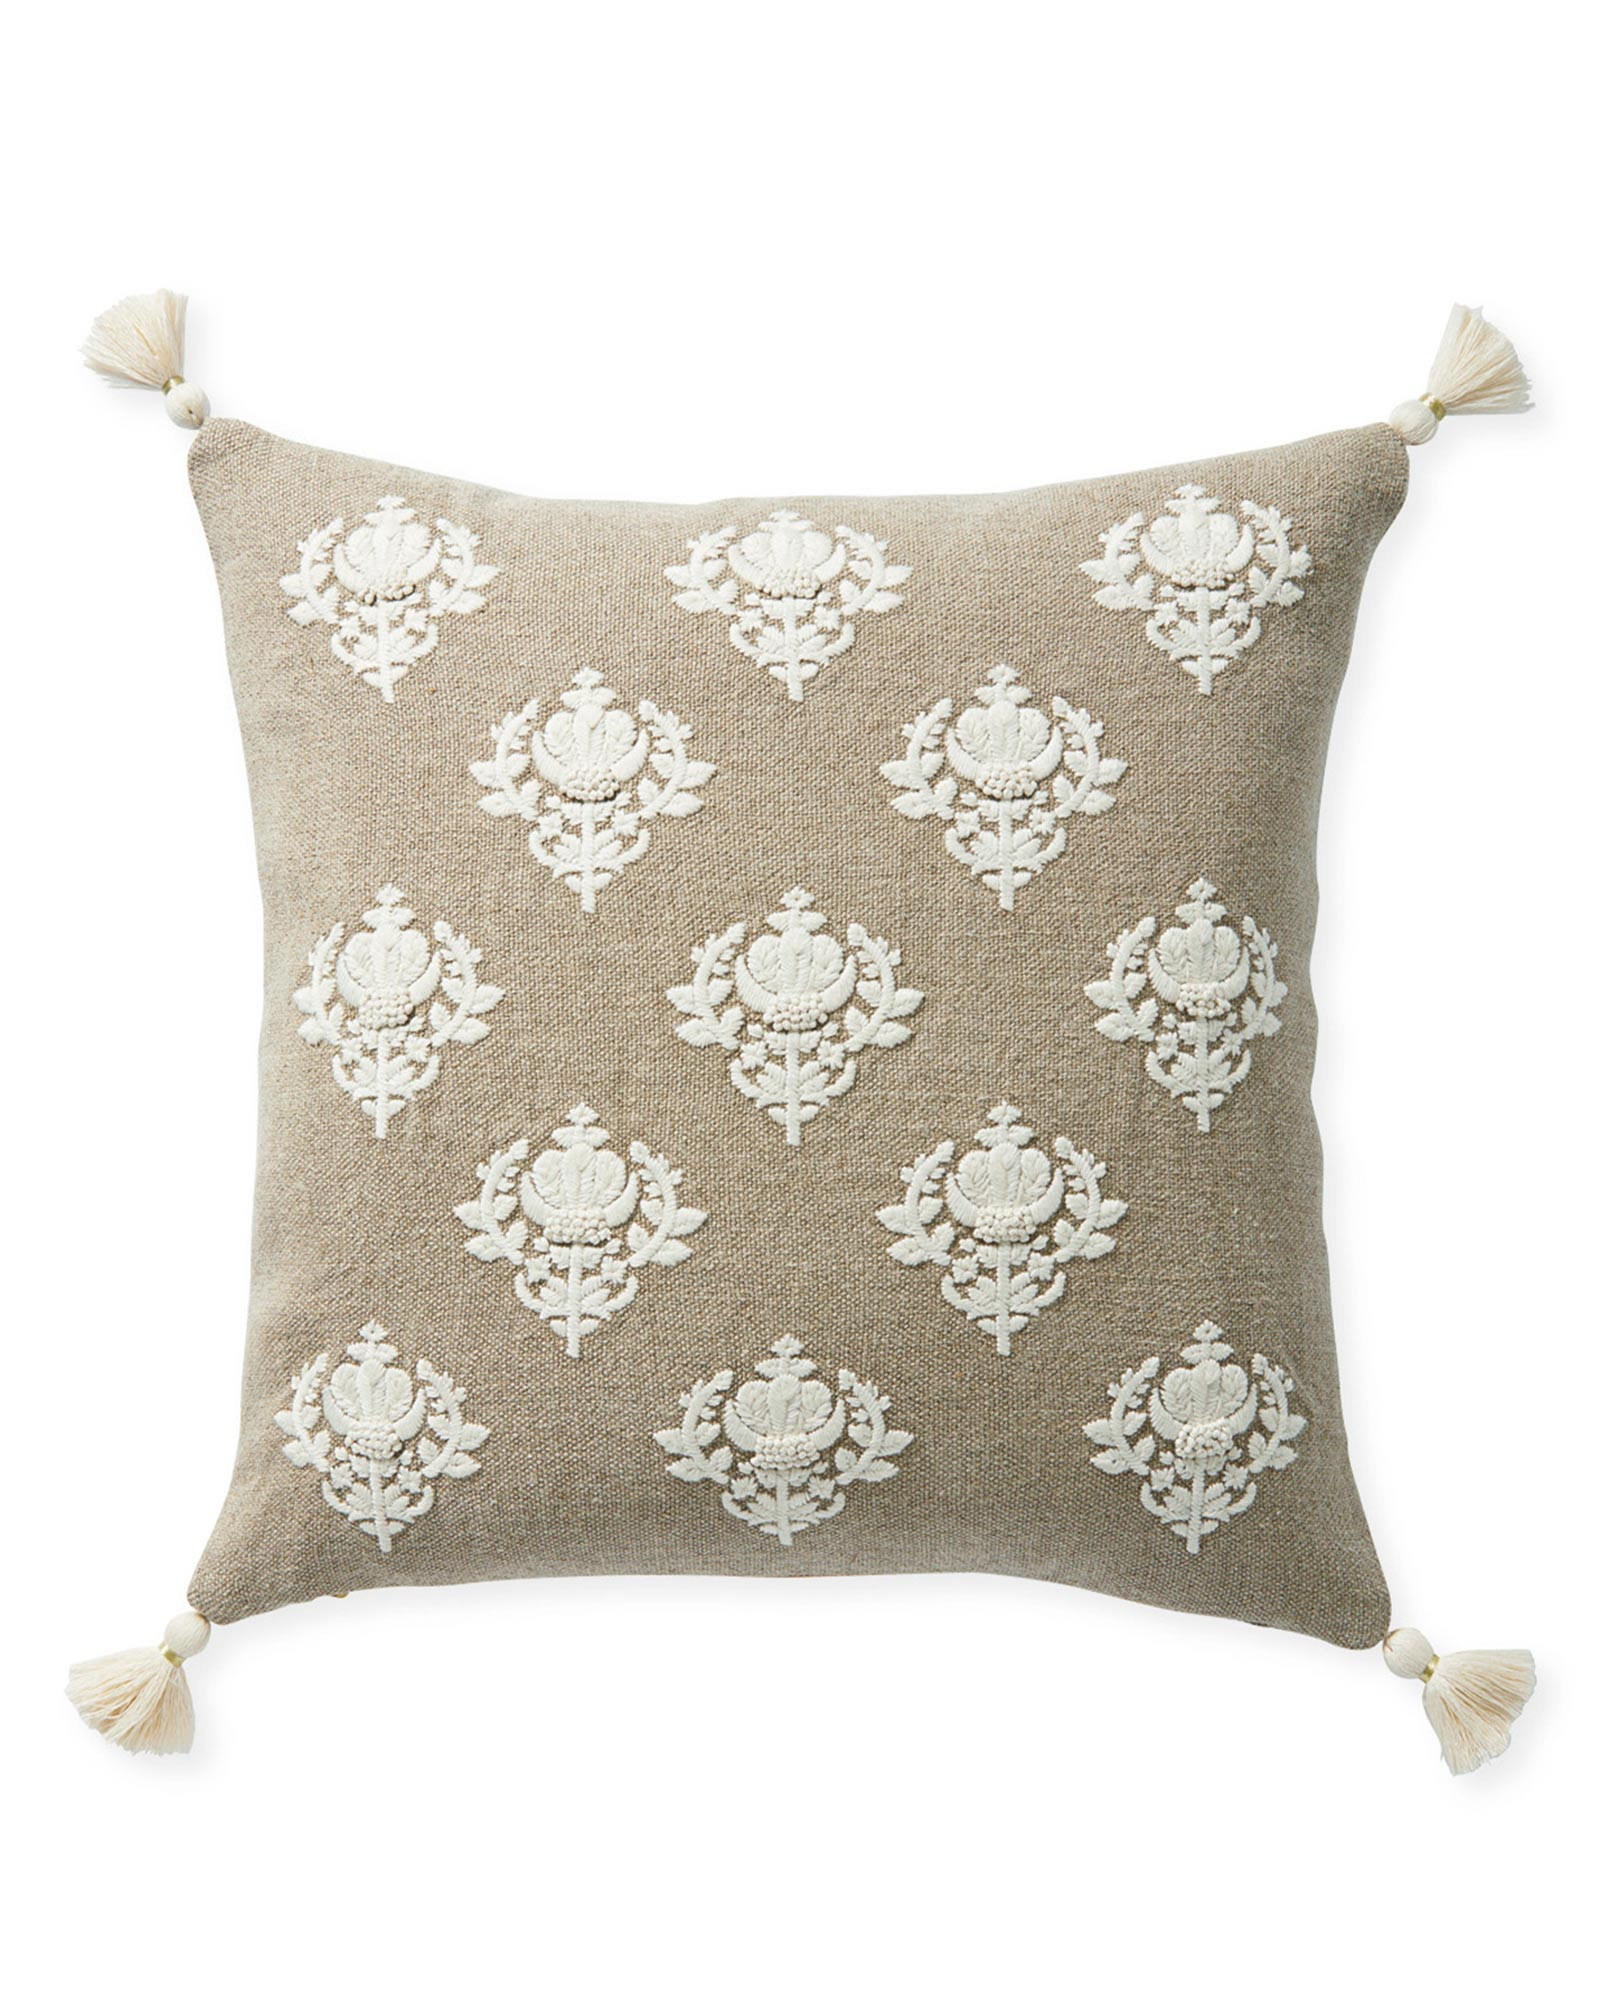 Kemp Pillow Cover - Flax,